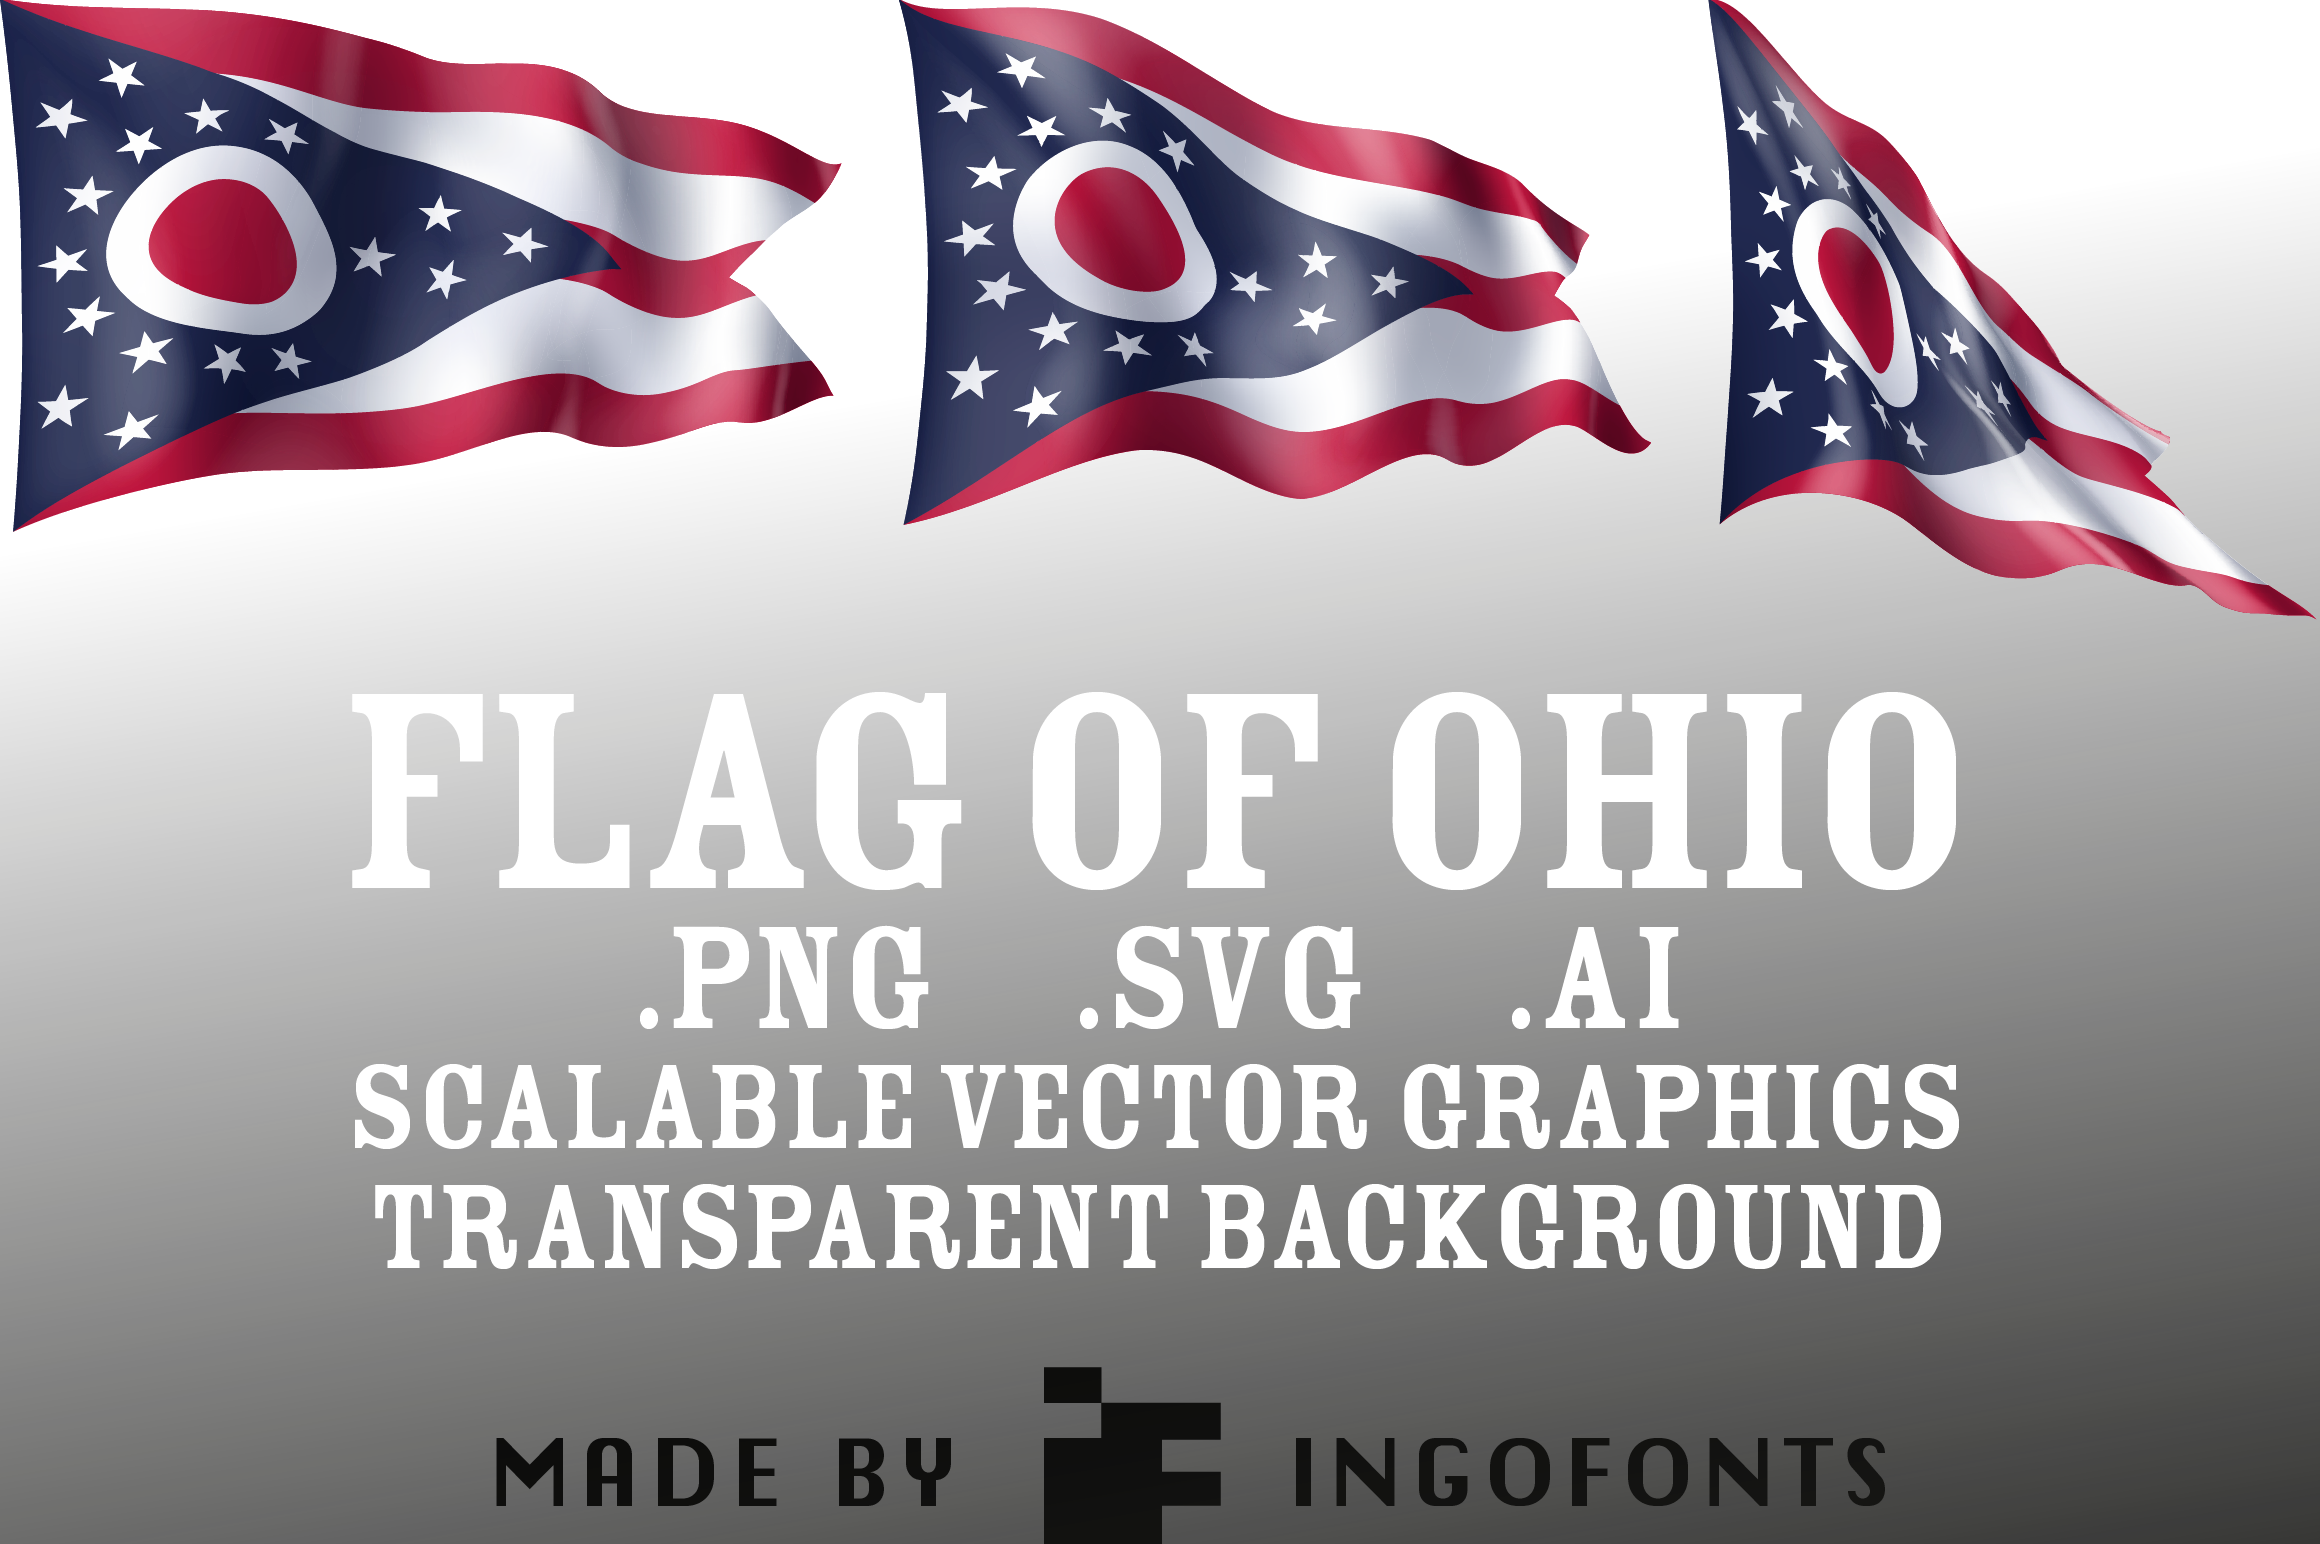 Download Free Waving Flag Of Ohio Graphic By Ingofonts Creative Fabrica for Cricut Explore, Silhouette and other cutting machines.